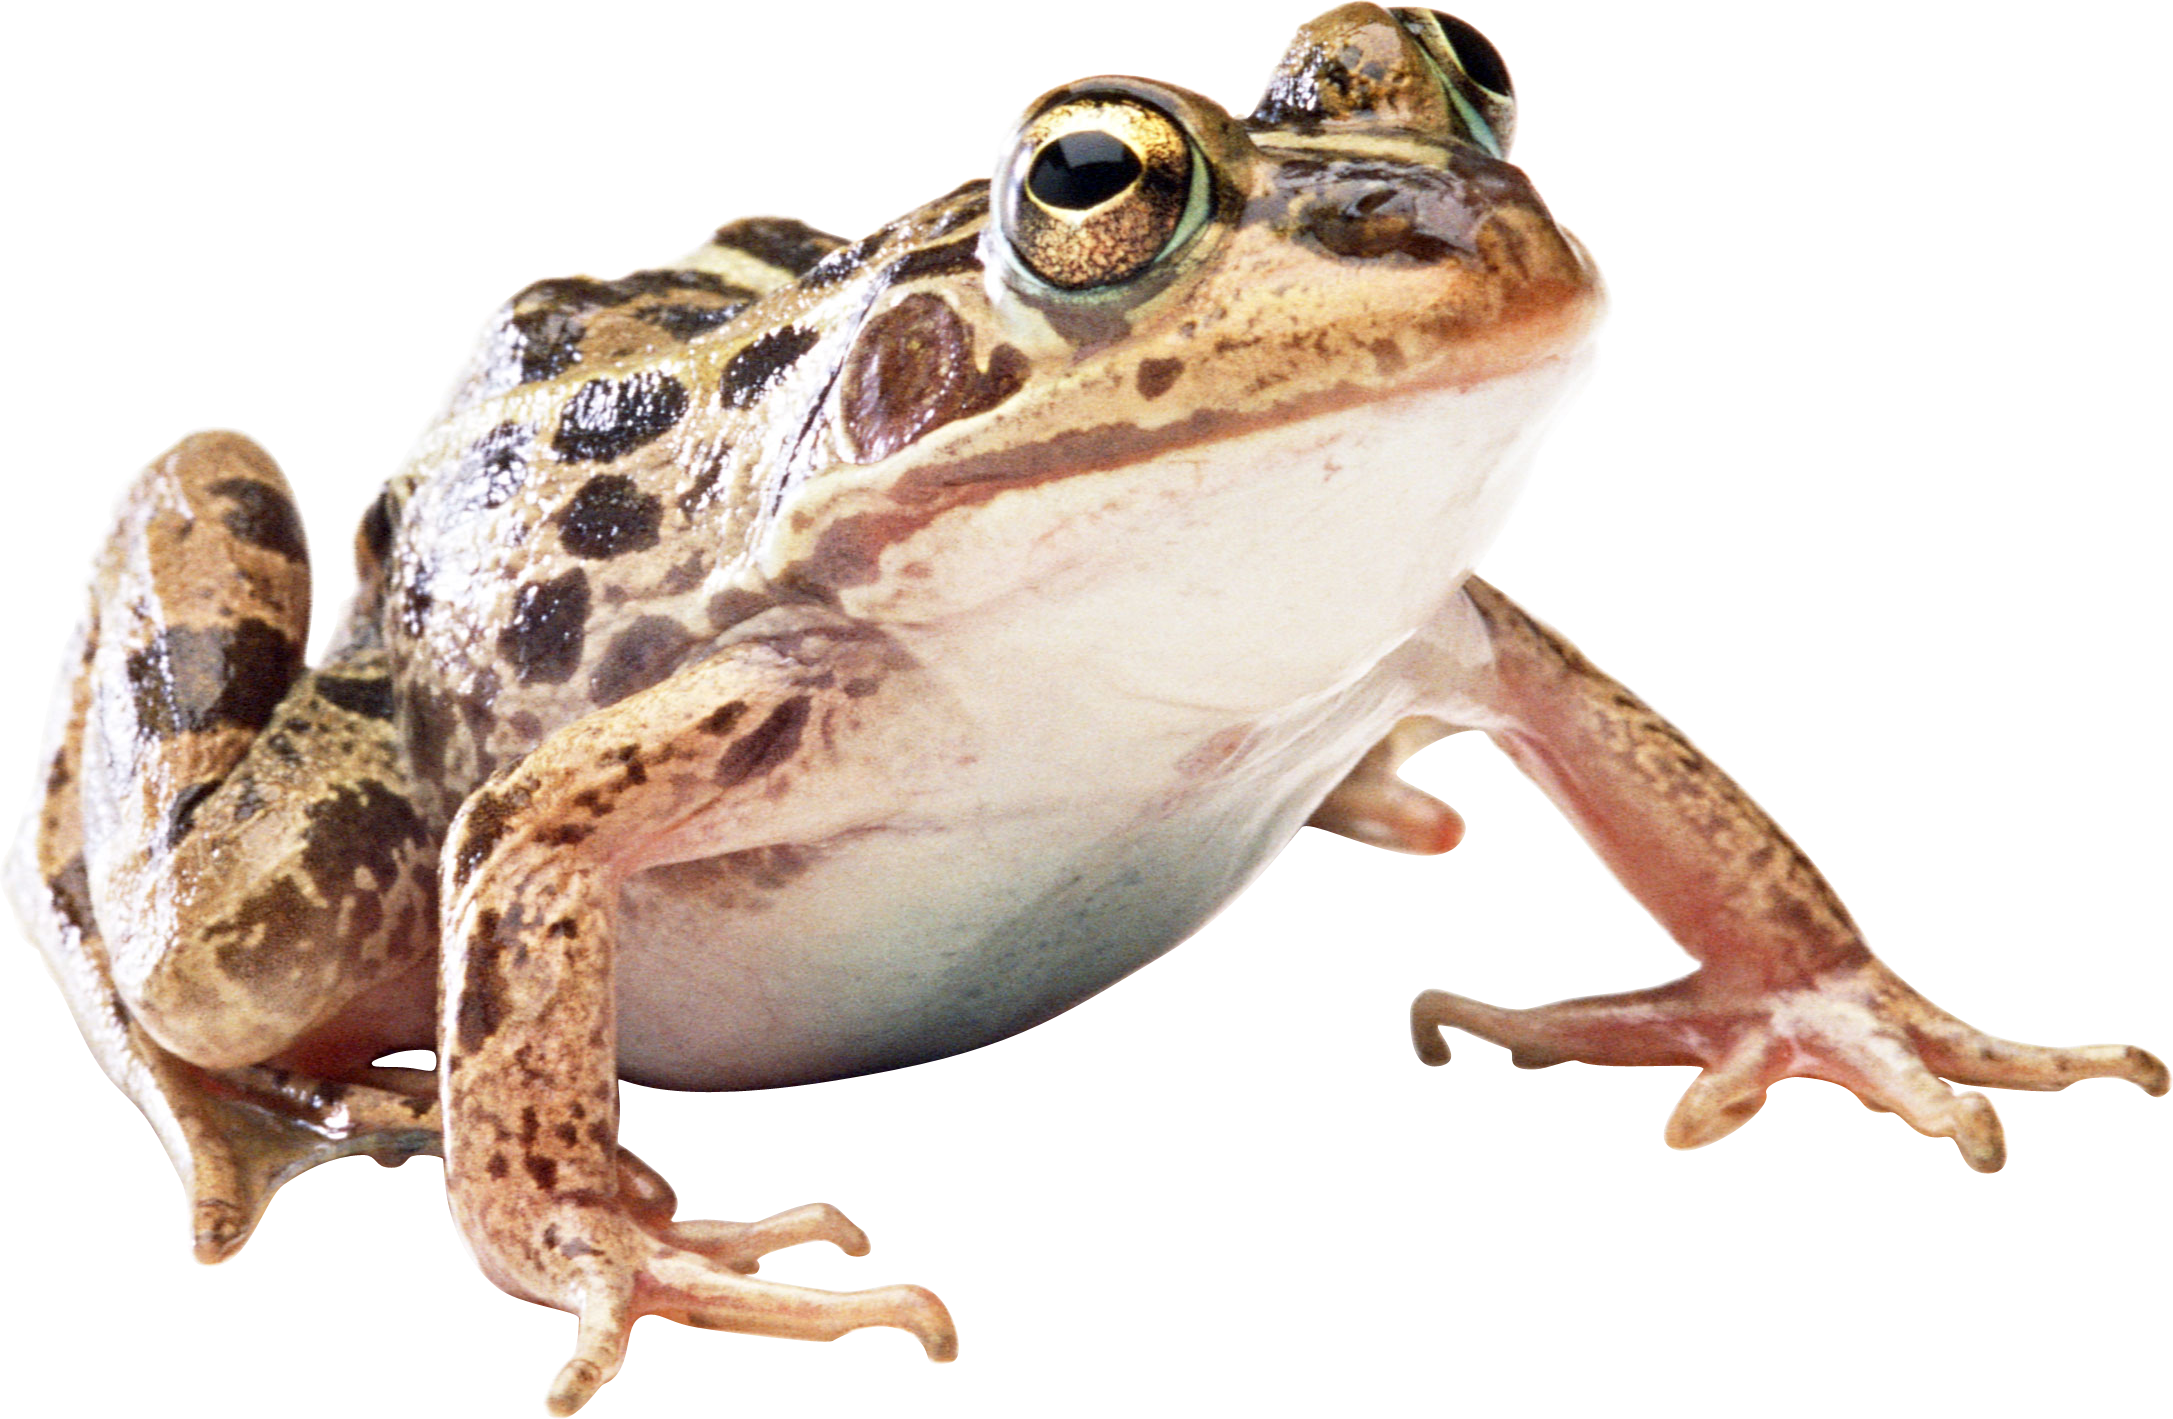 frog image picture